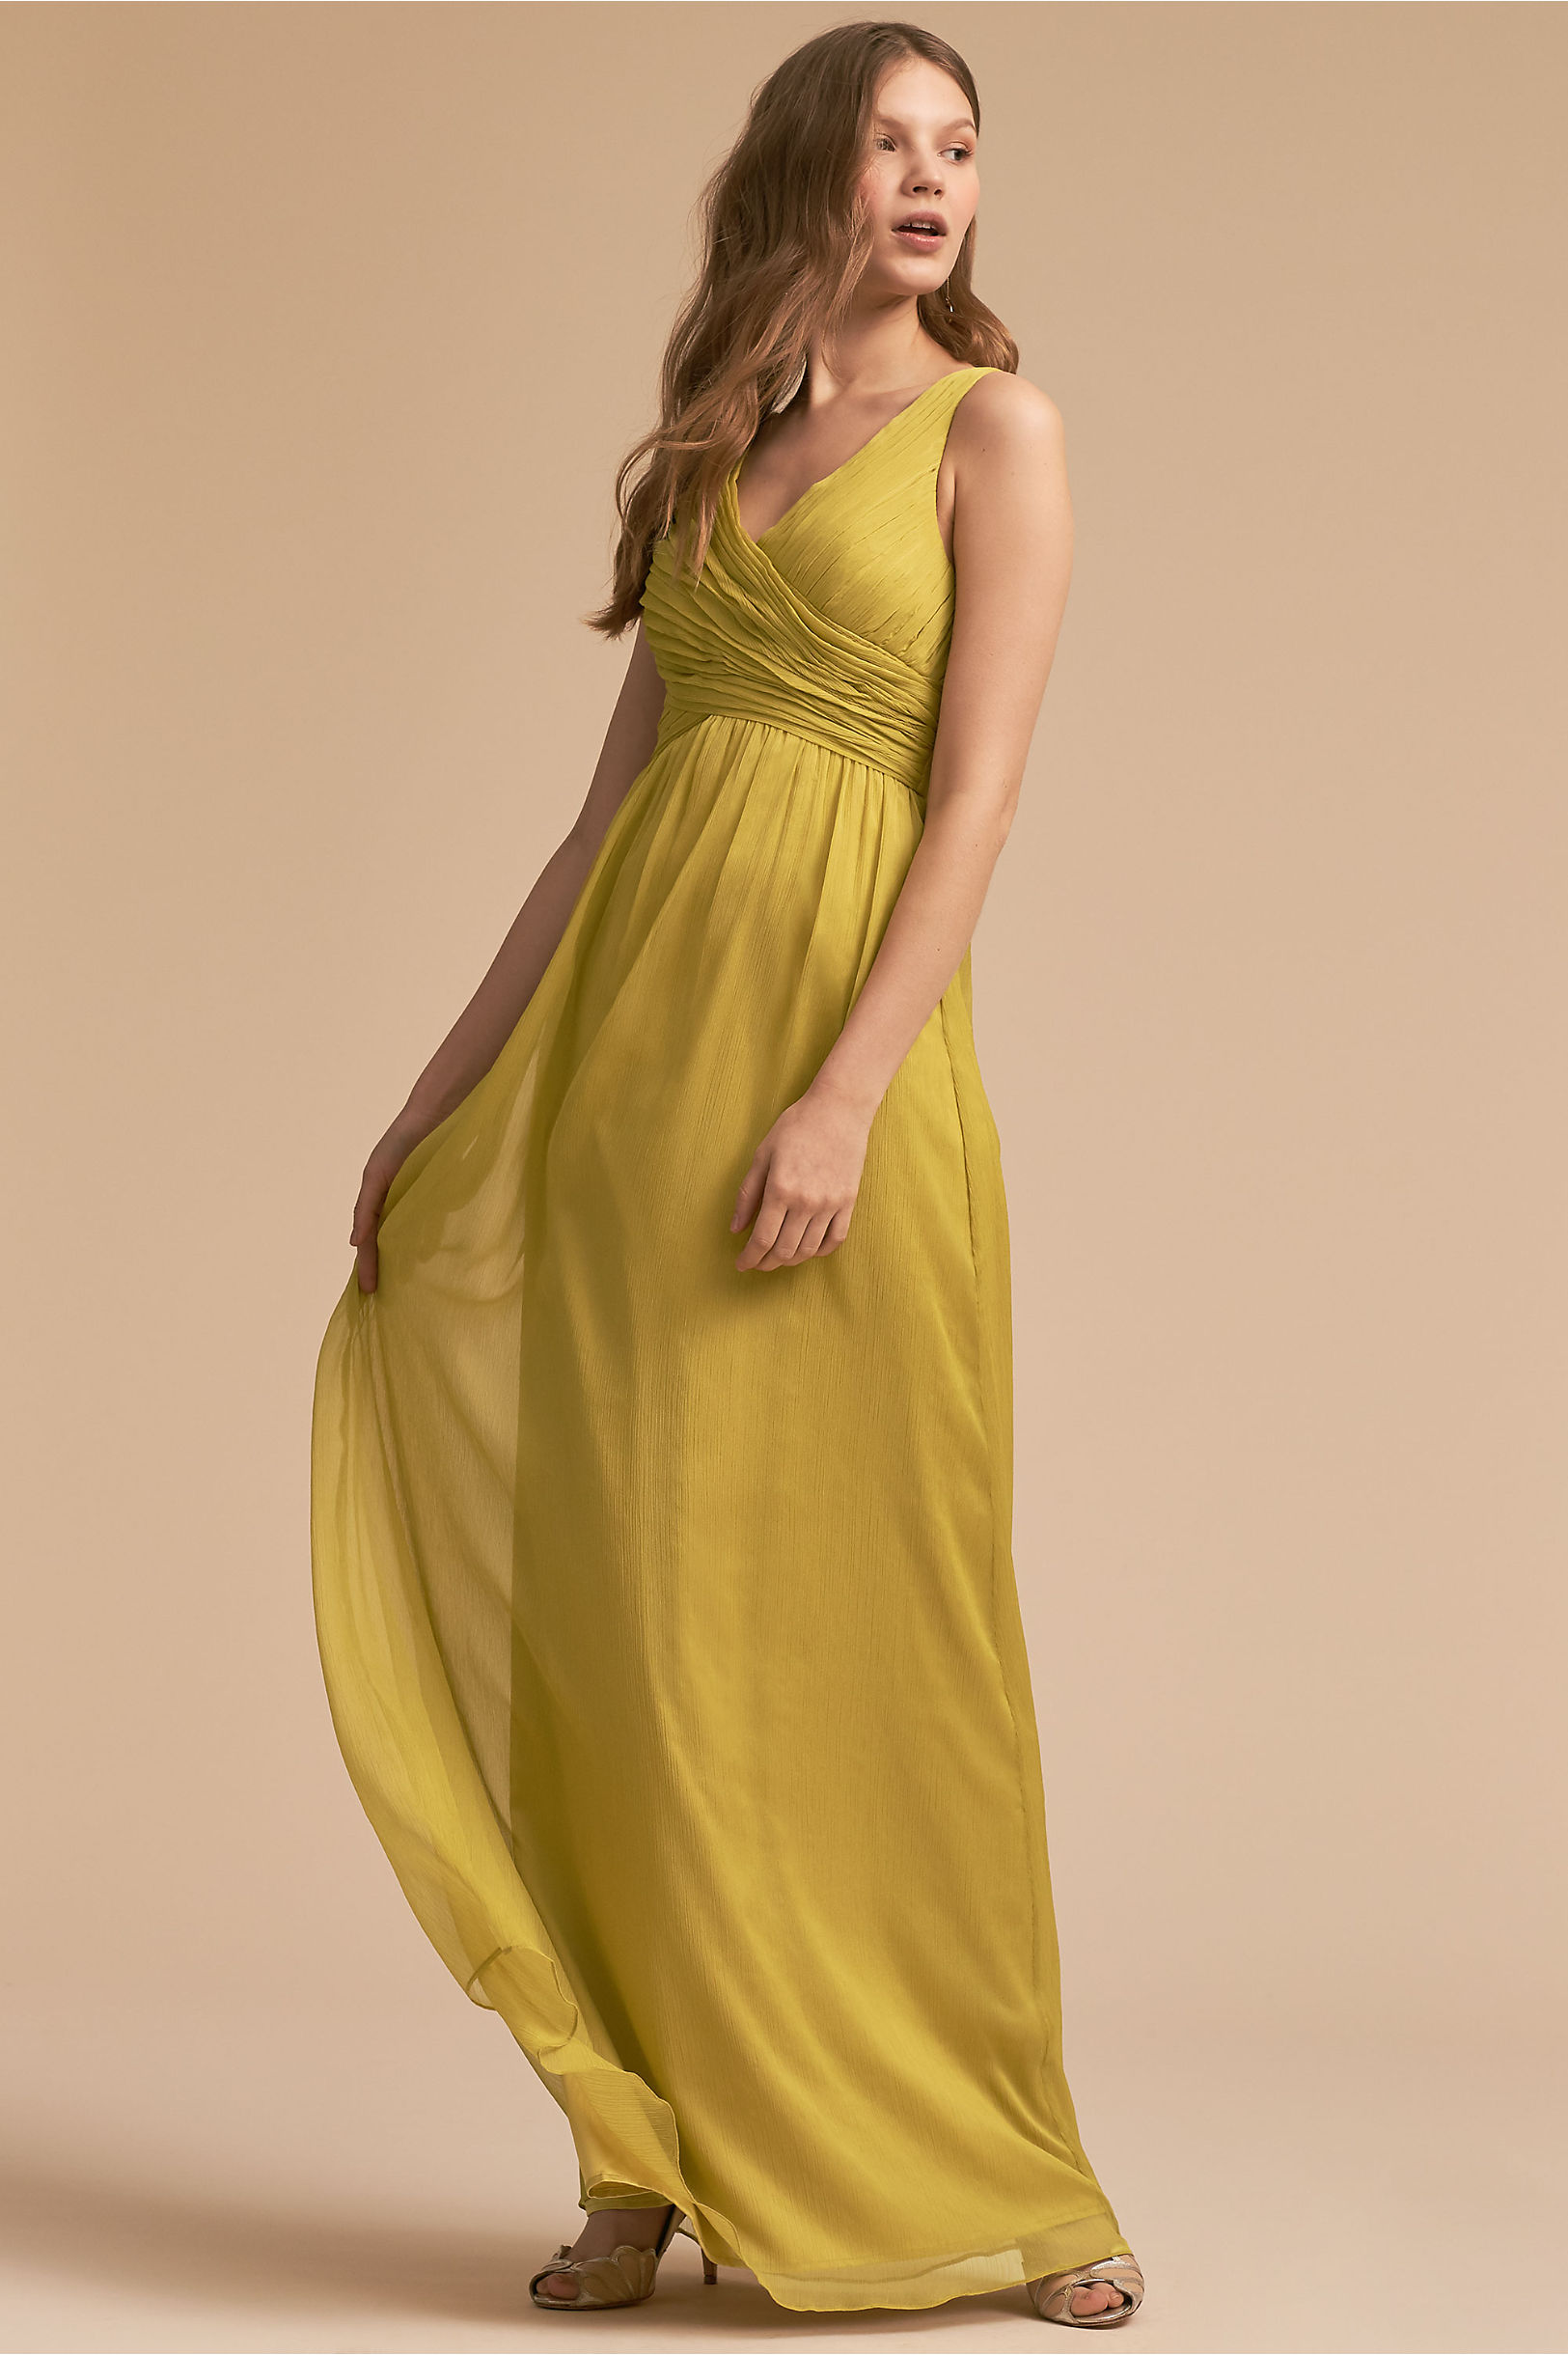 Long bridesmaid dresses gowns chiffon styles bhldn angie dress ombrellifo Gallery